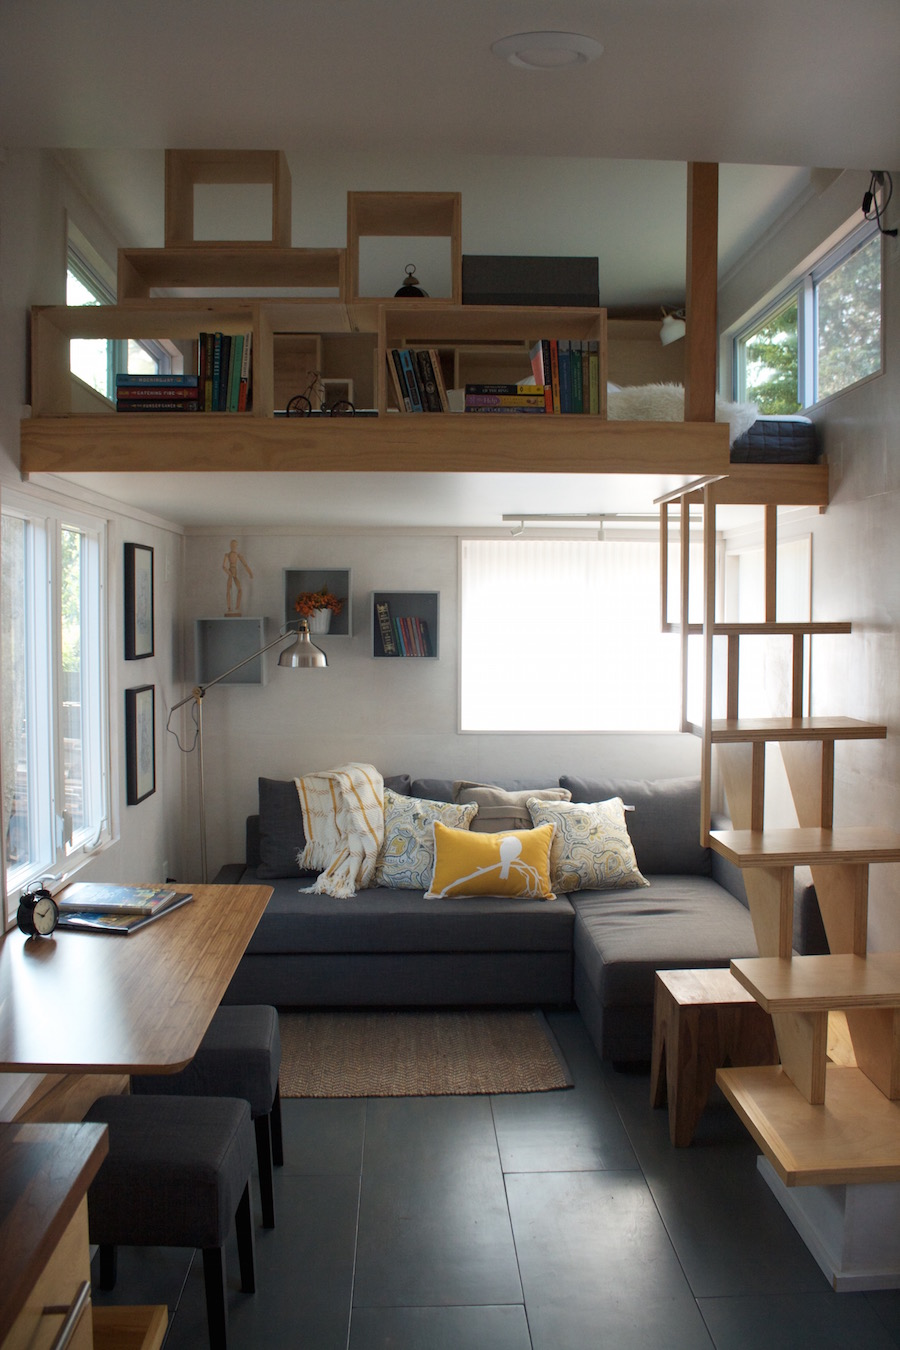 liberation-tiny-house-6